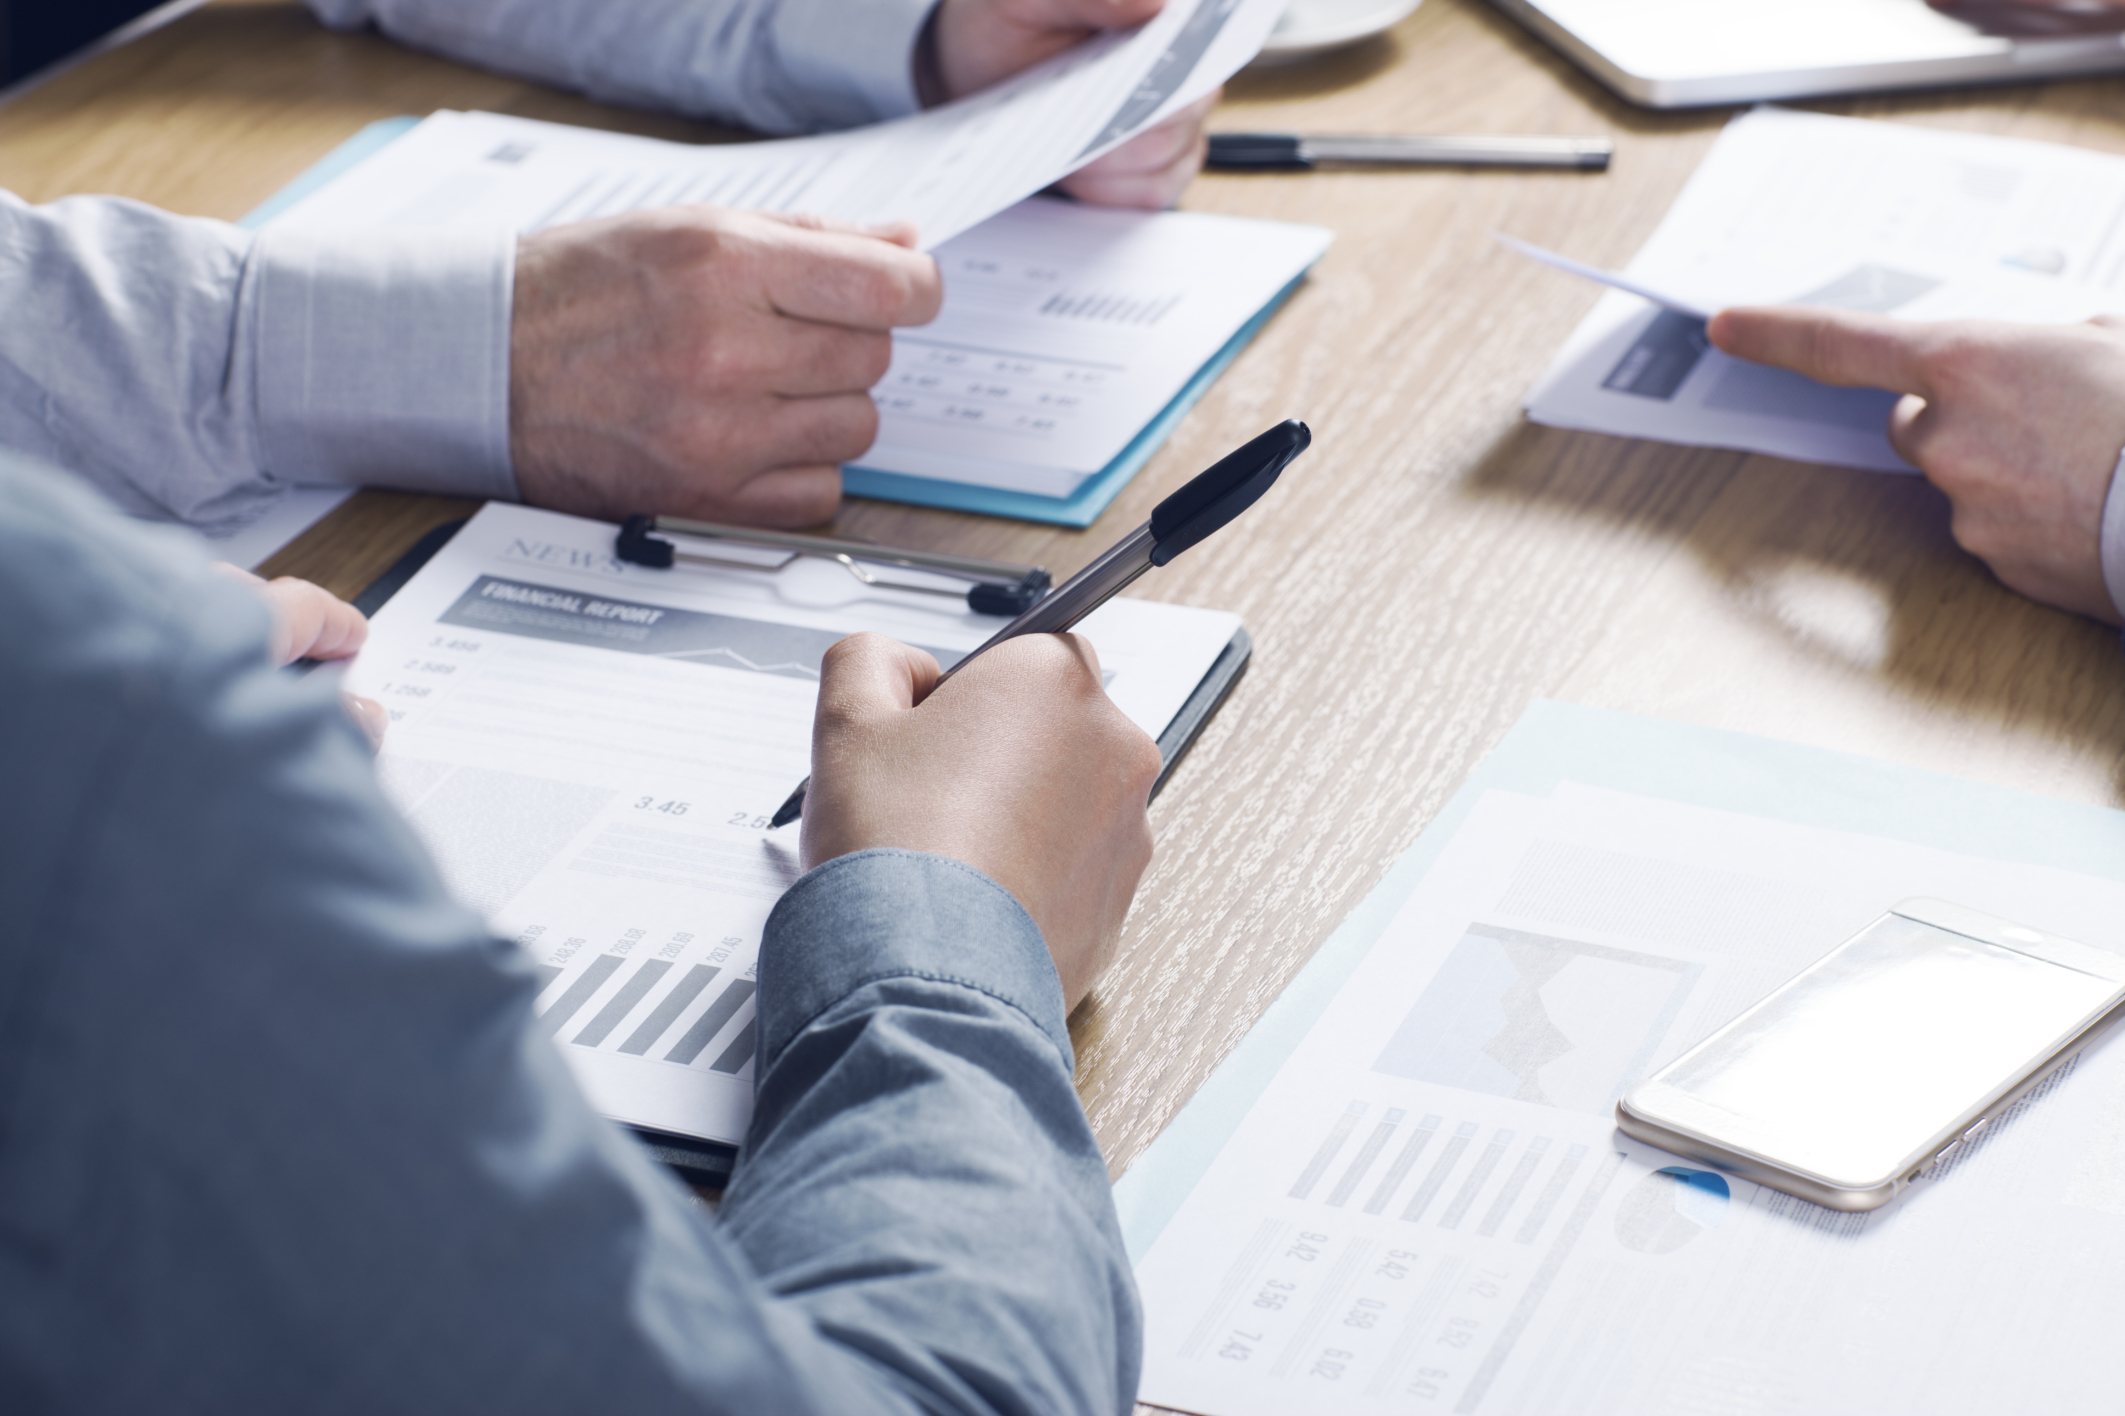 Red flags to watch for when choosing a financial advisor